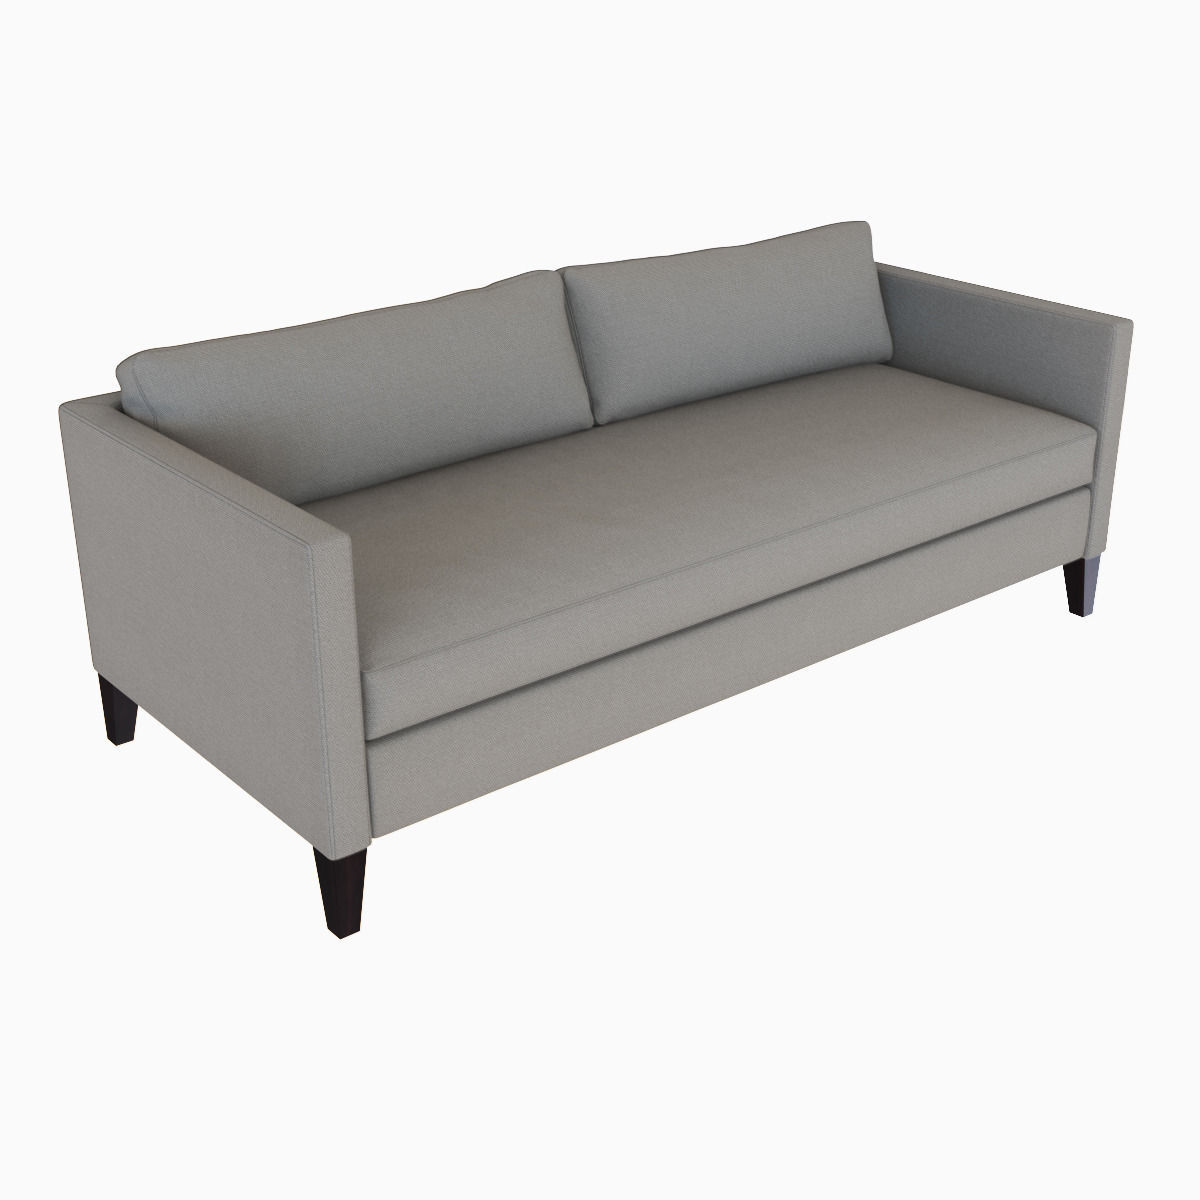 sofa box princess flip lycksele storage 2 seat bed ikea thesofa